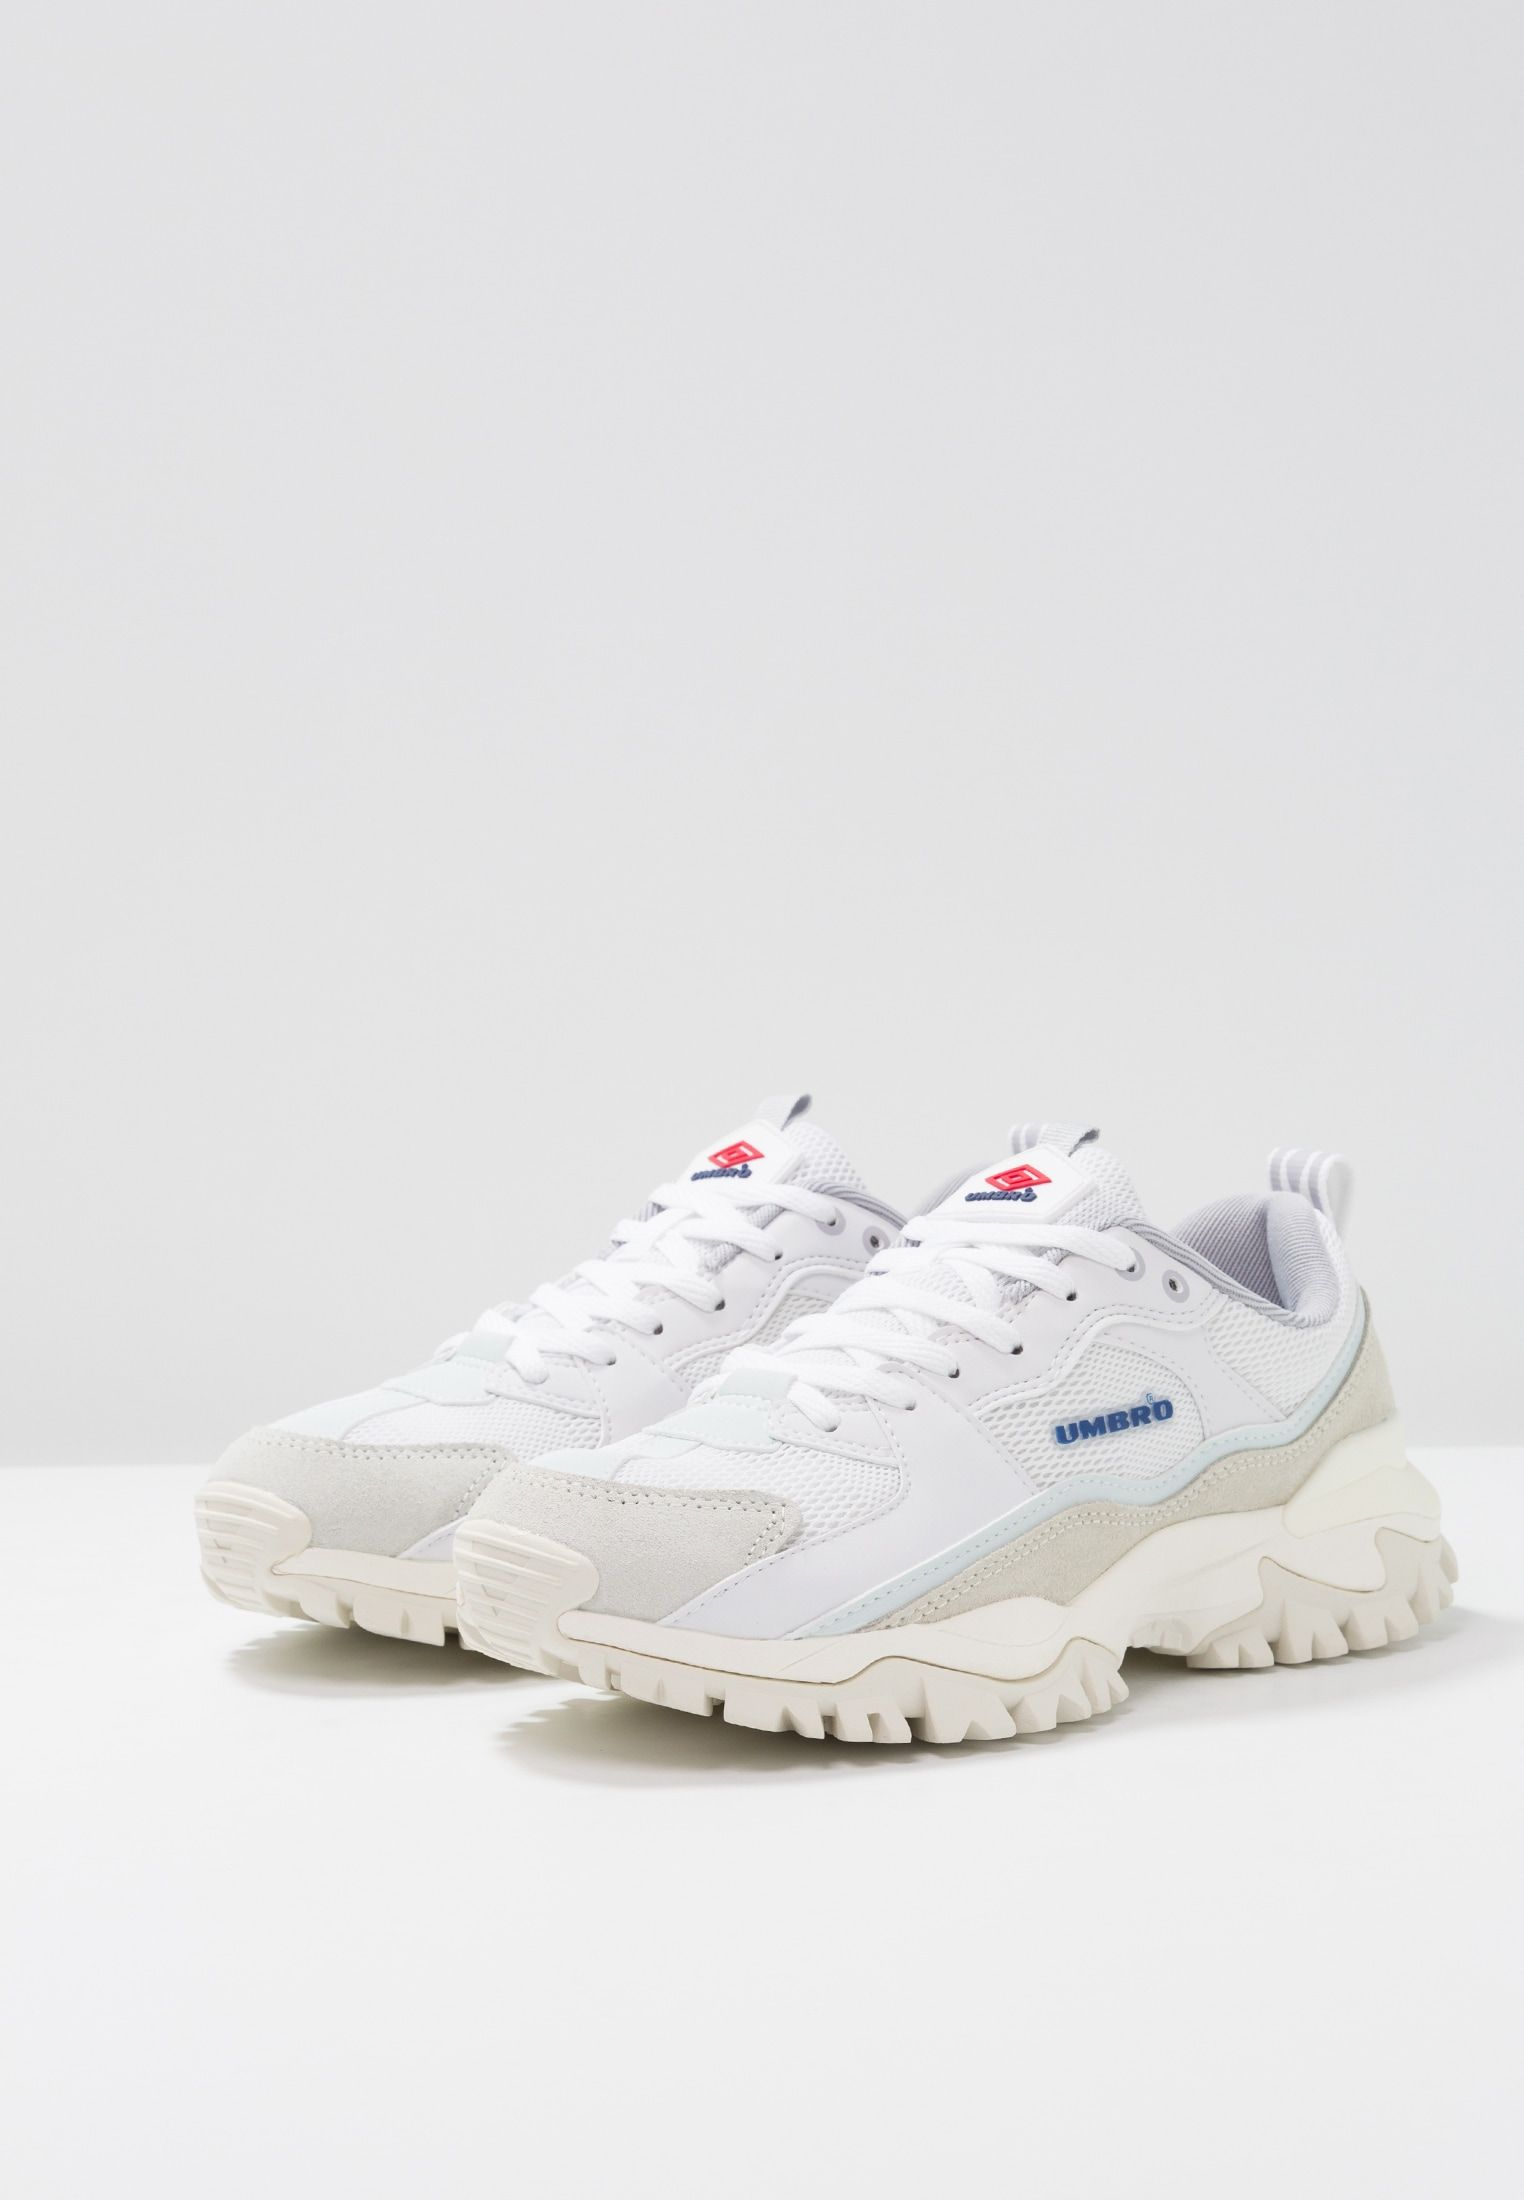 Umbro Projects BUMPY - Sneakers laag - clean white - Zalando.be 6786fc165e6